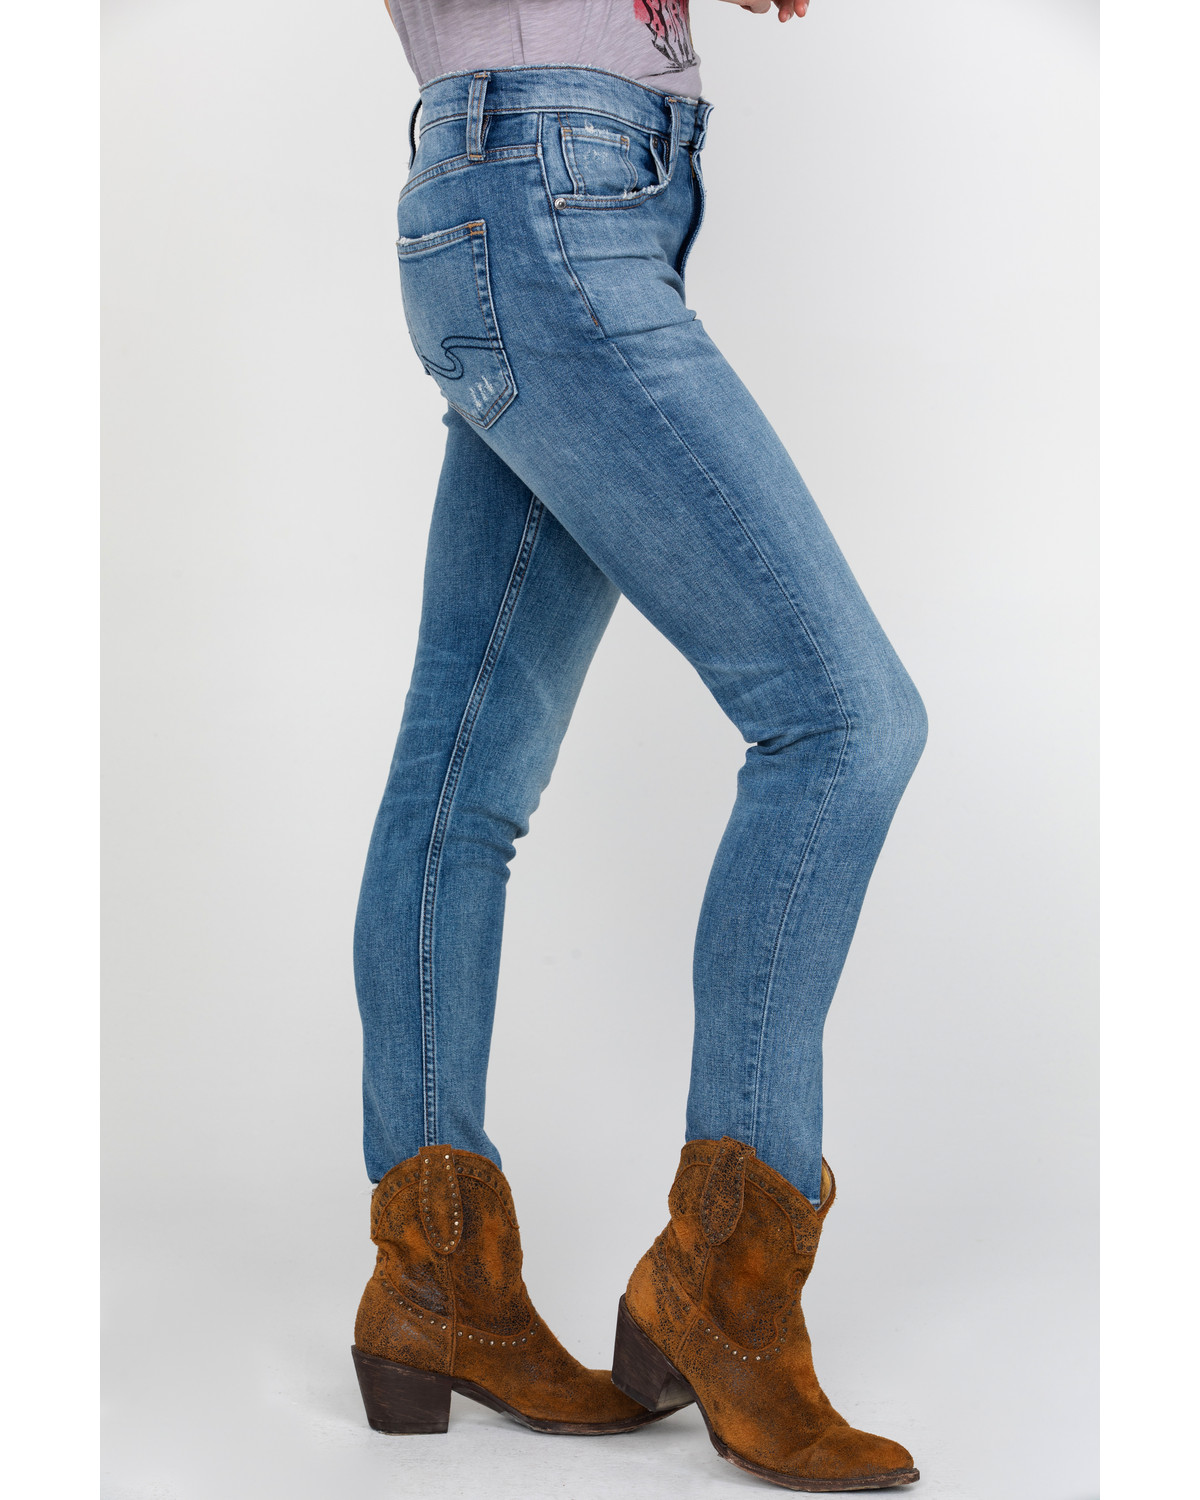 8c36064cb5b Silver Women s Frisco High Rise Tapered Jeans - Country Outfitter